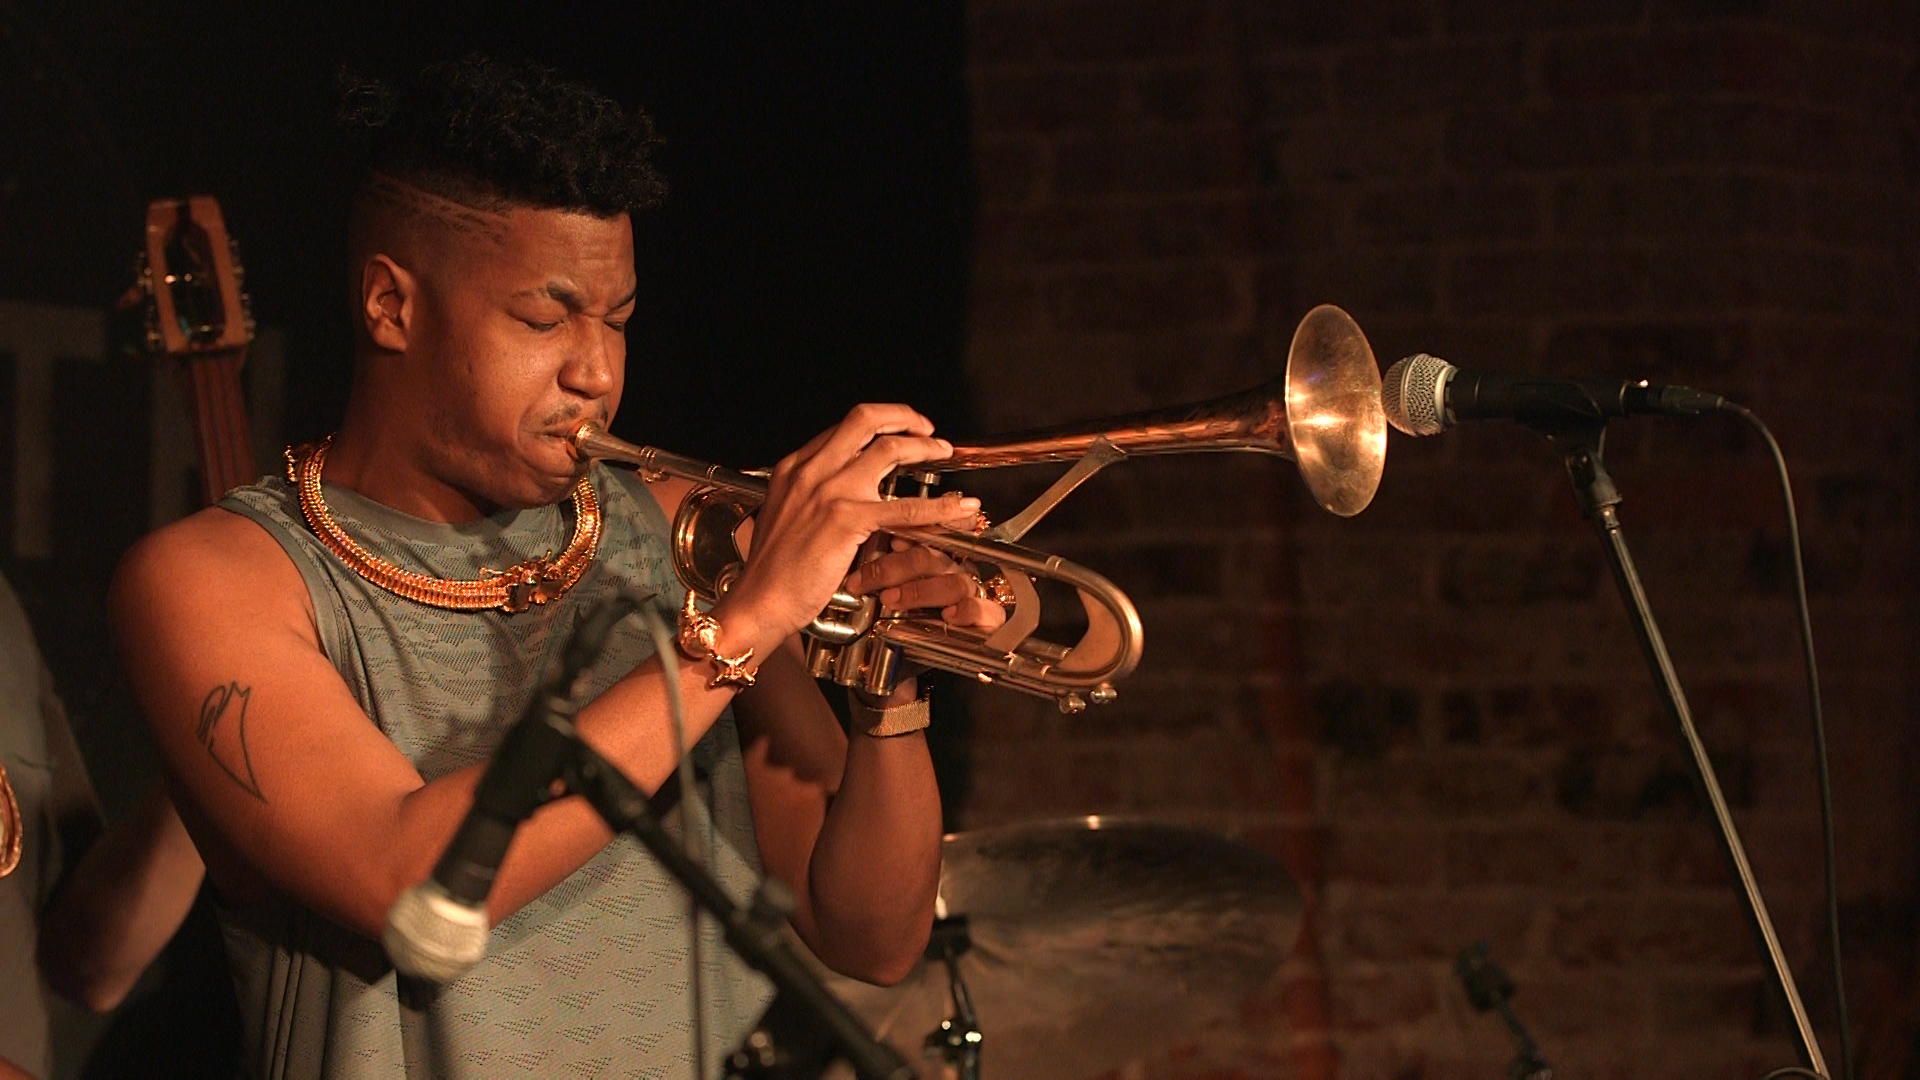 christian scott atunde adjuah: 2nd century jazz - Christian Scott aTunde Adjuah is leading the charge into Jazz's next chapter.Season 2, Episode 8